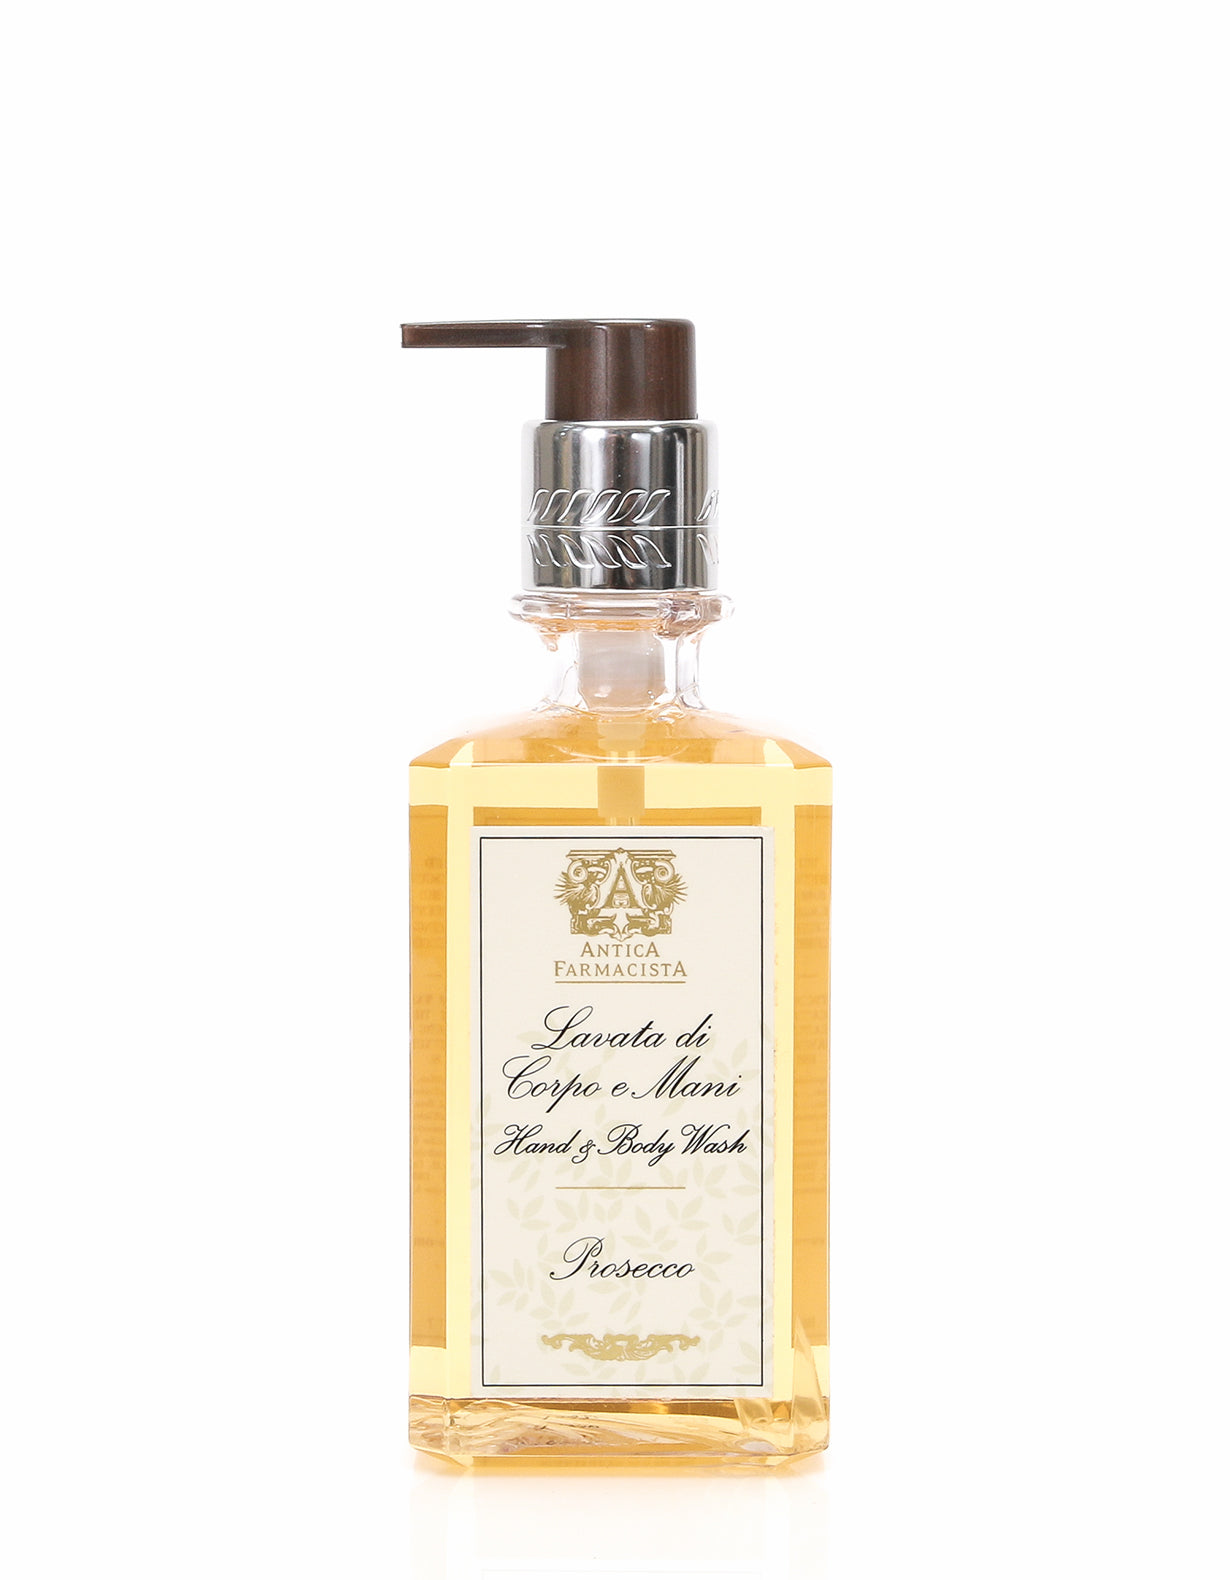 ANTICA FARMACISTA - 10 OZ HAND & BODY WASH IN PROSECCO